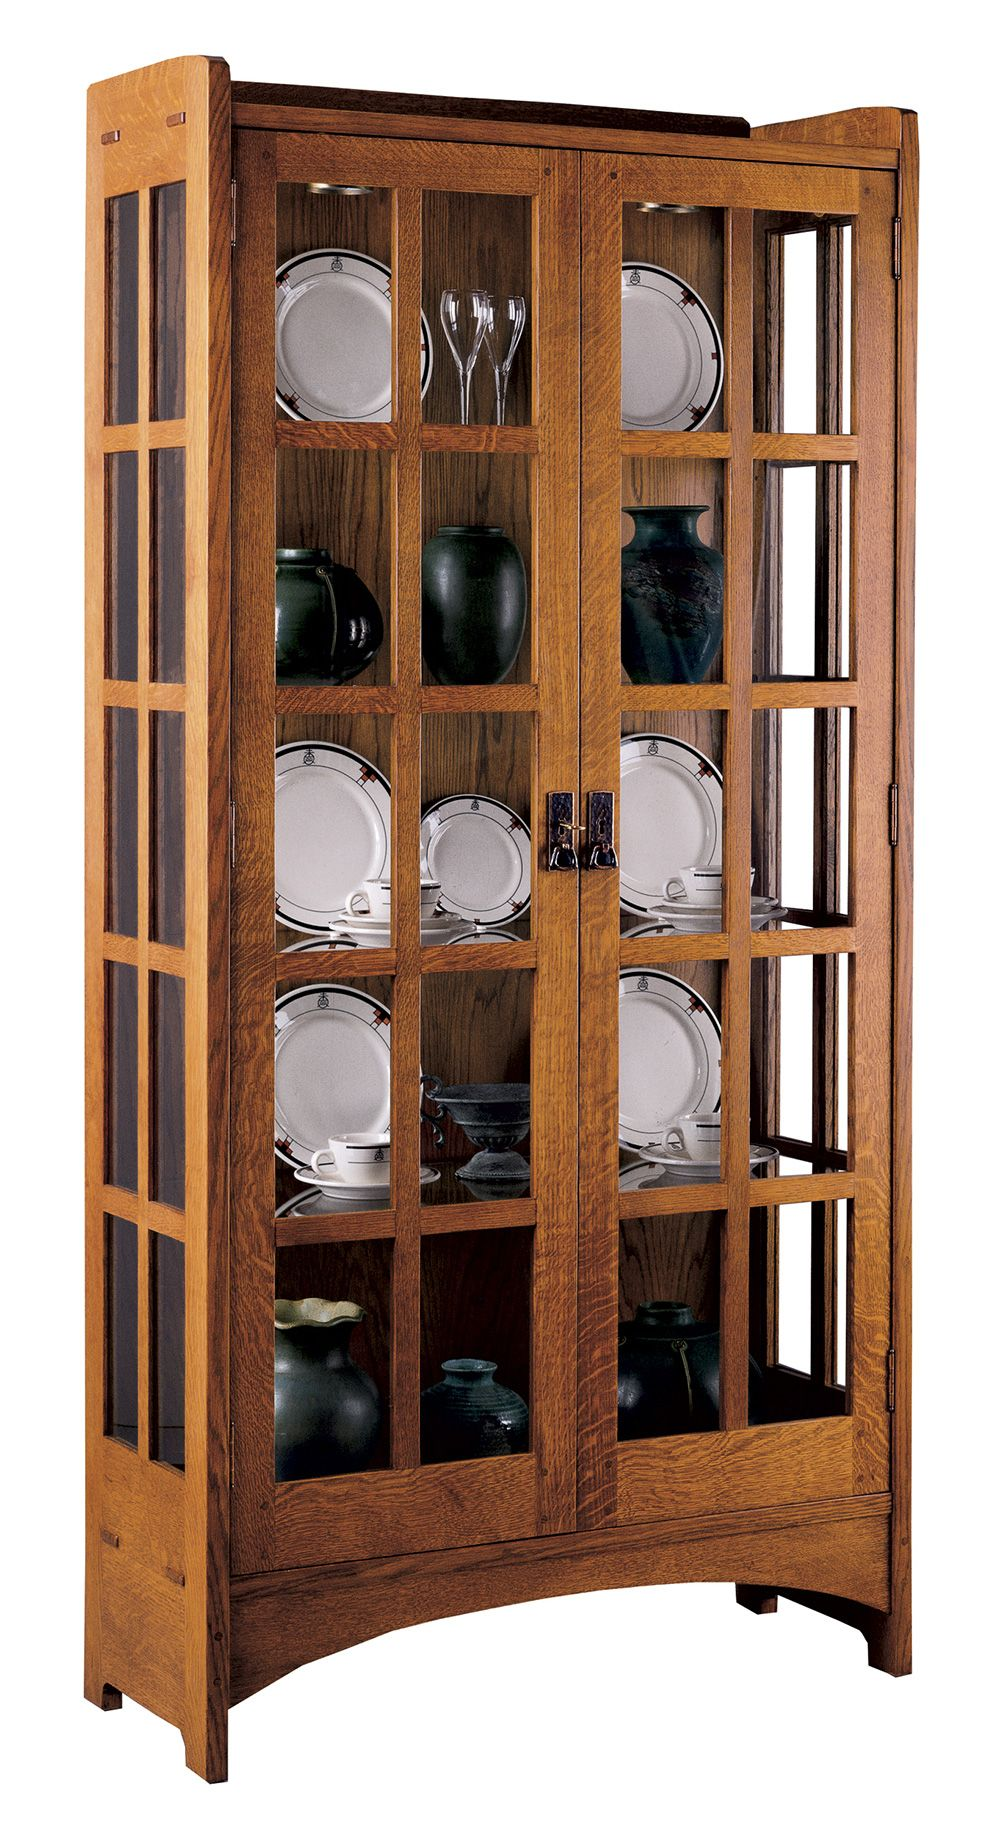 Display Cabinet Mission Collection Stickley Furniture Stickley Furniture Craftsman Furniture Mission Style Furniture